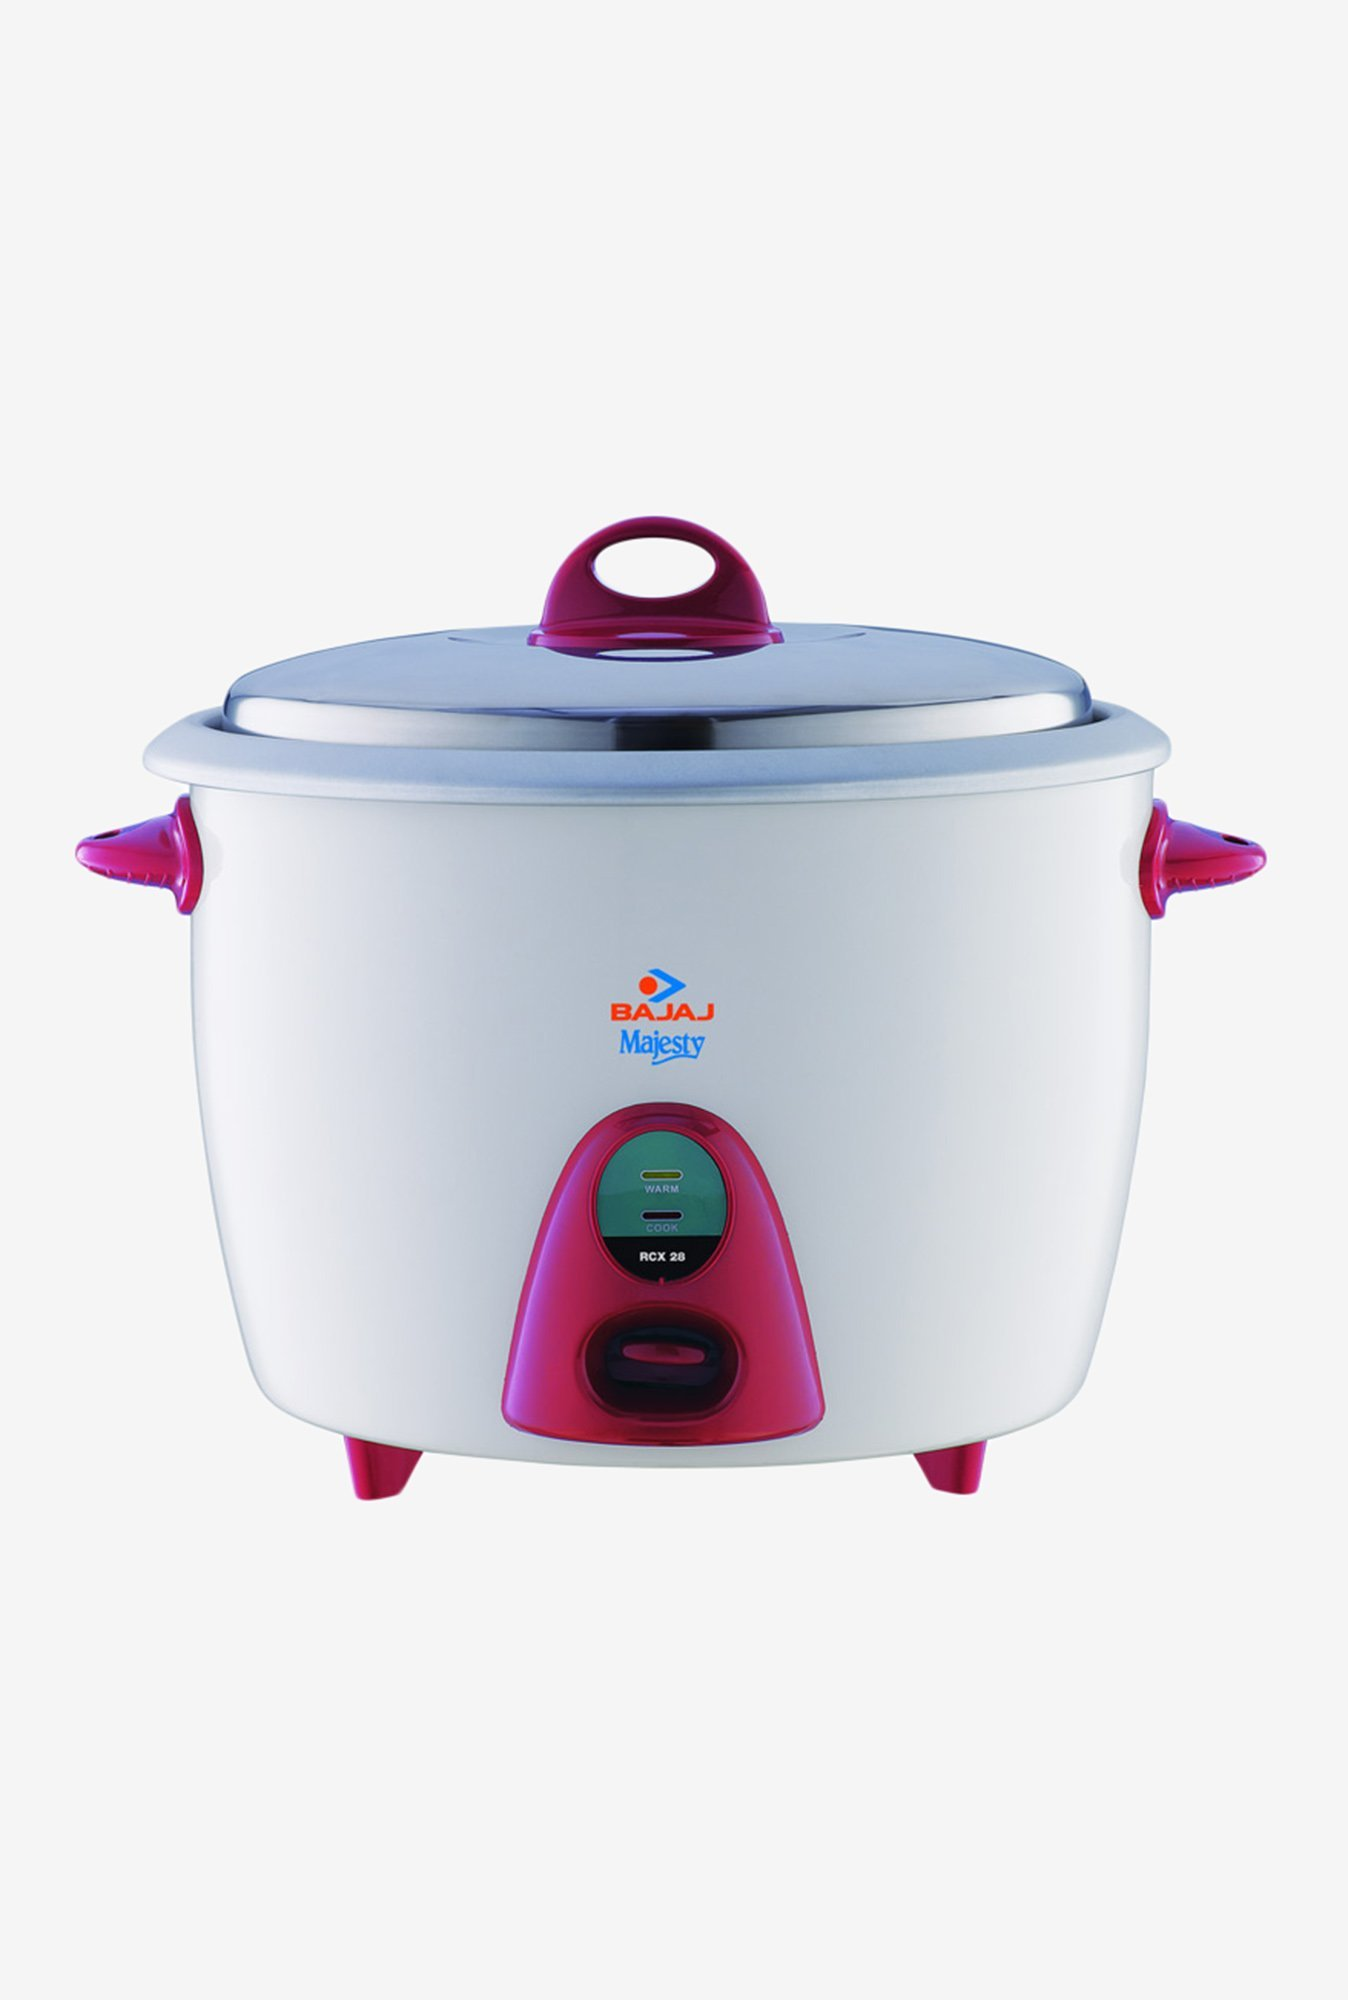 Bajaj Majesty 2.8 L RCX 28 Rice Cooker White